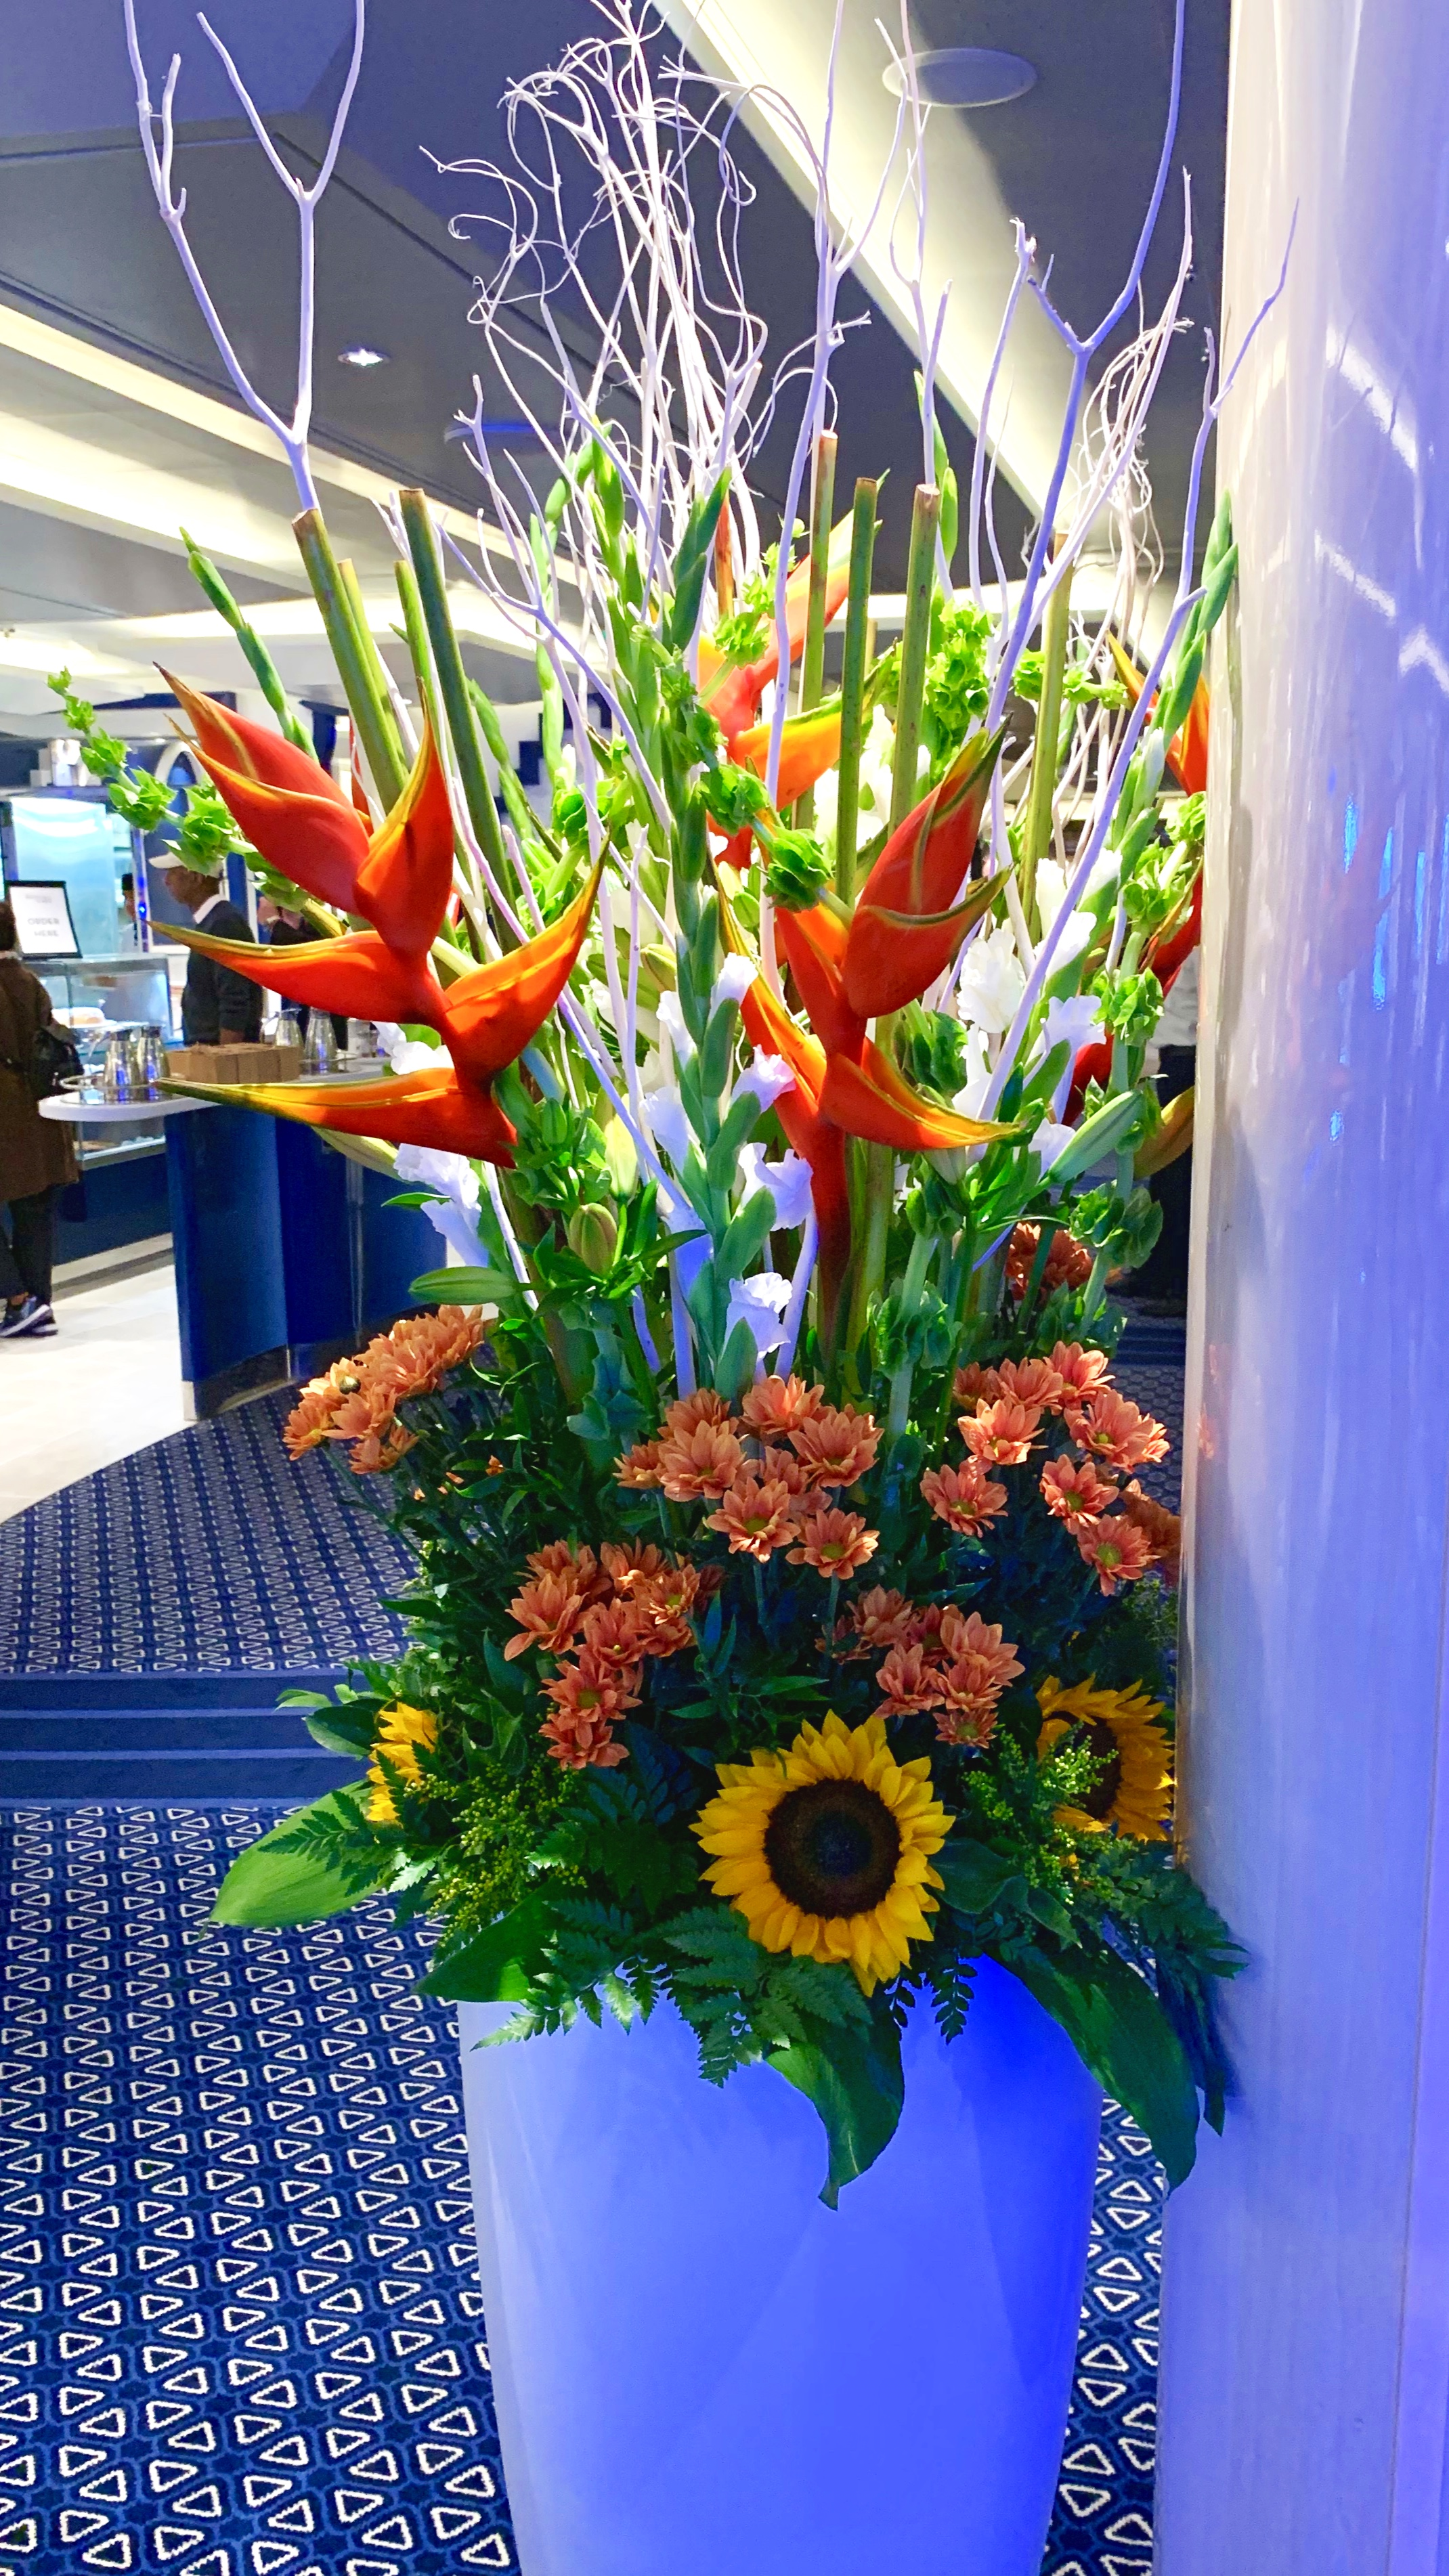 More beautiful flowers in the Grand Dutch cafe